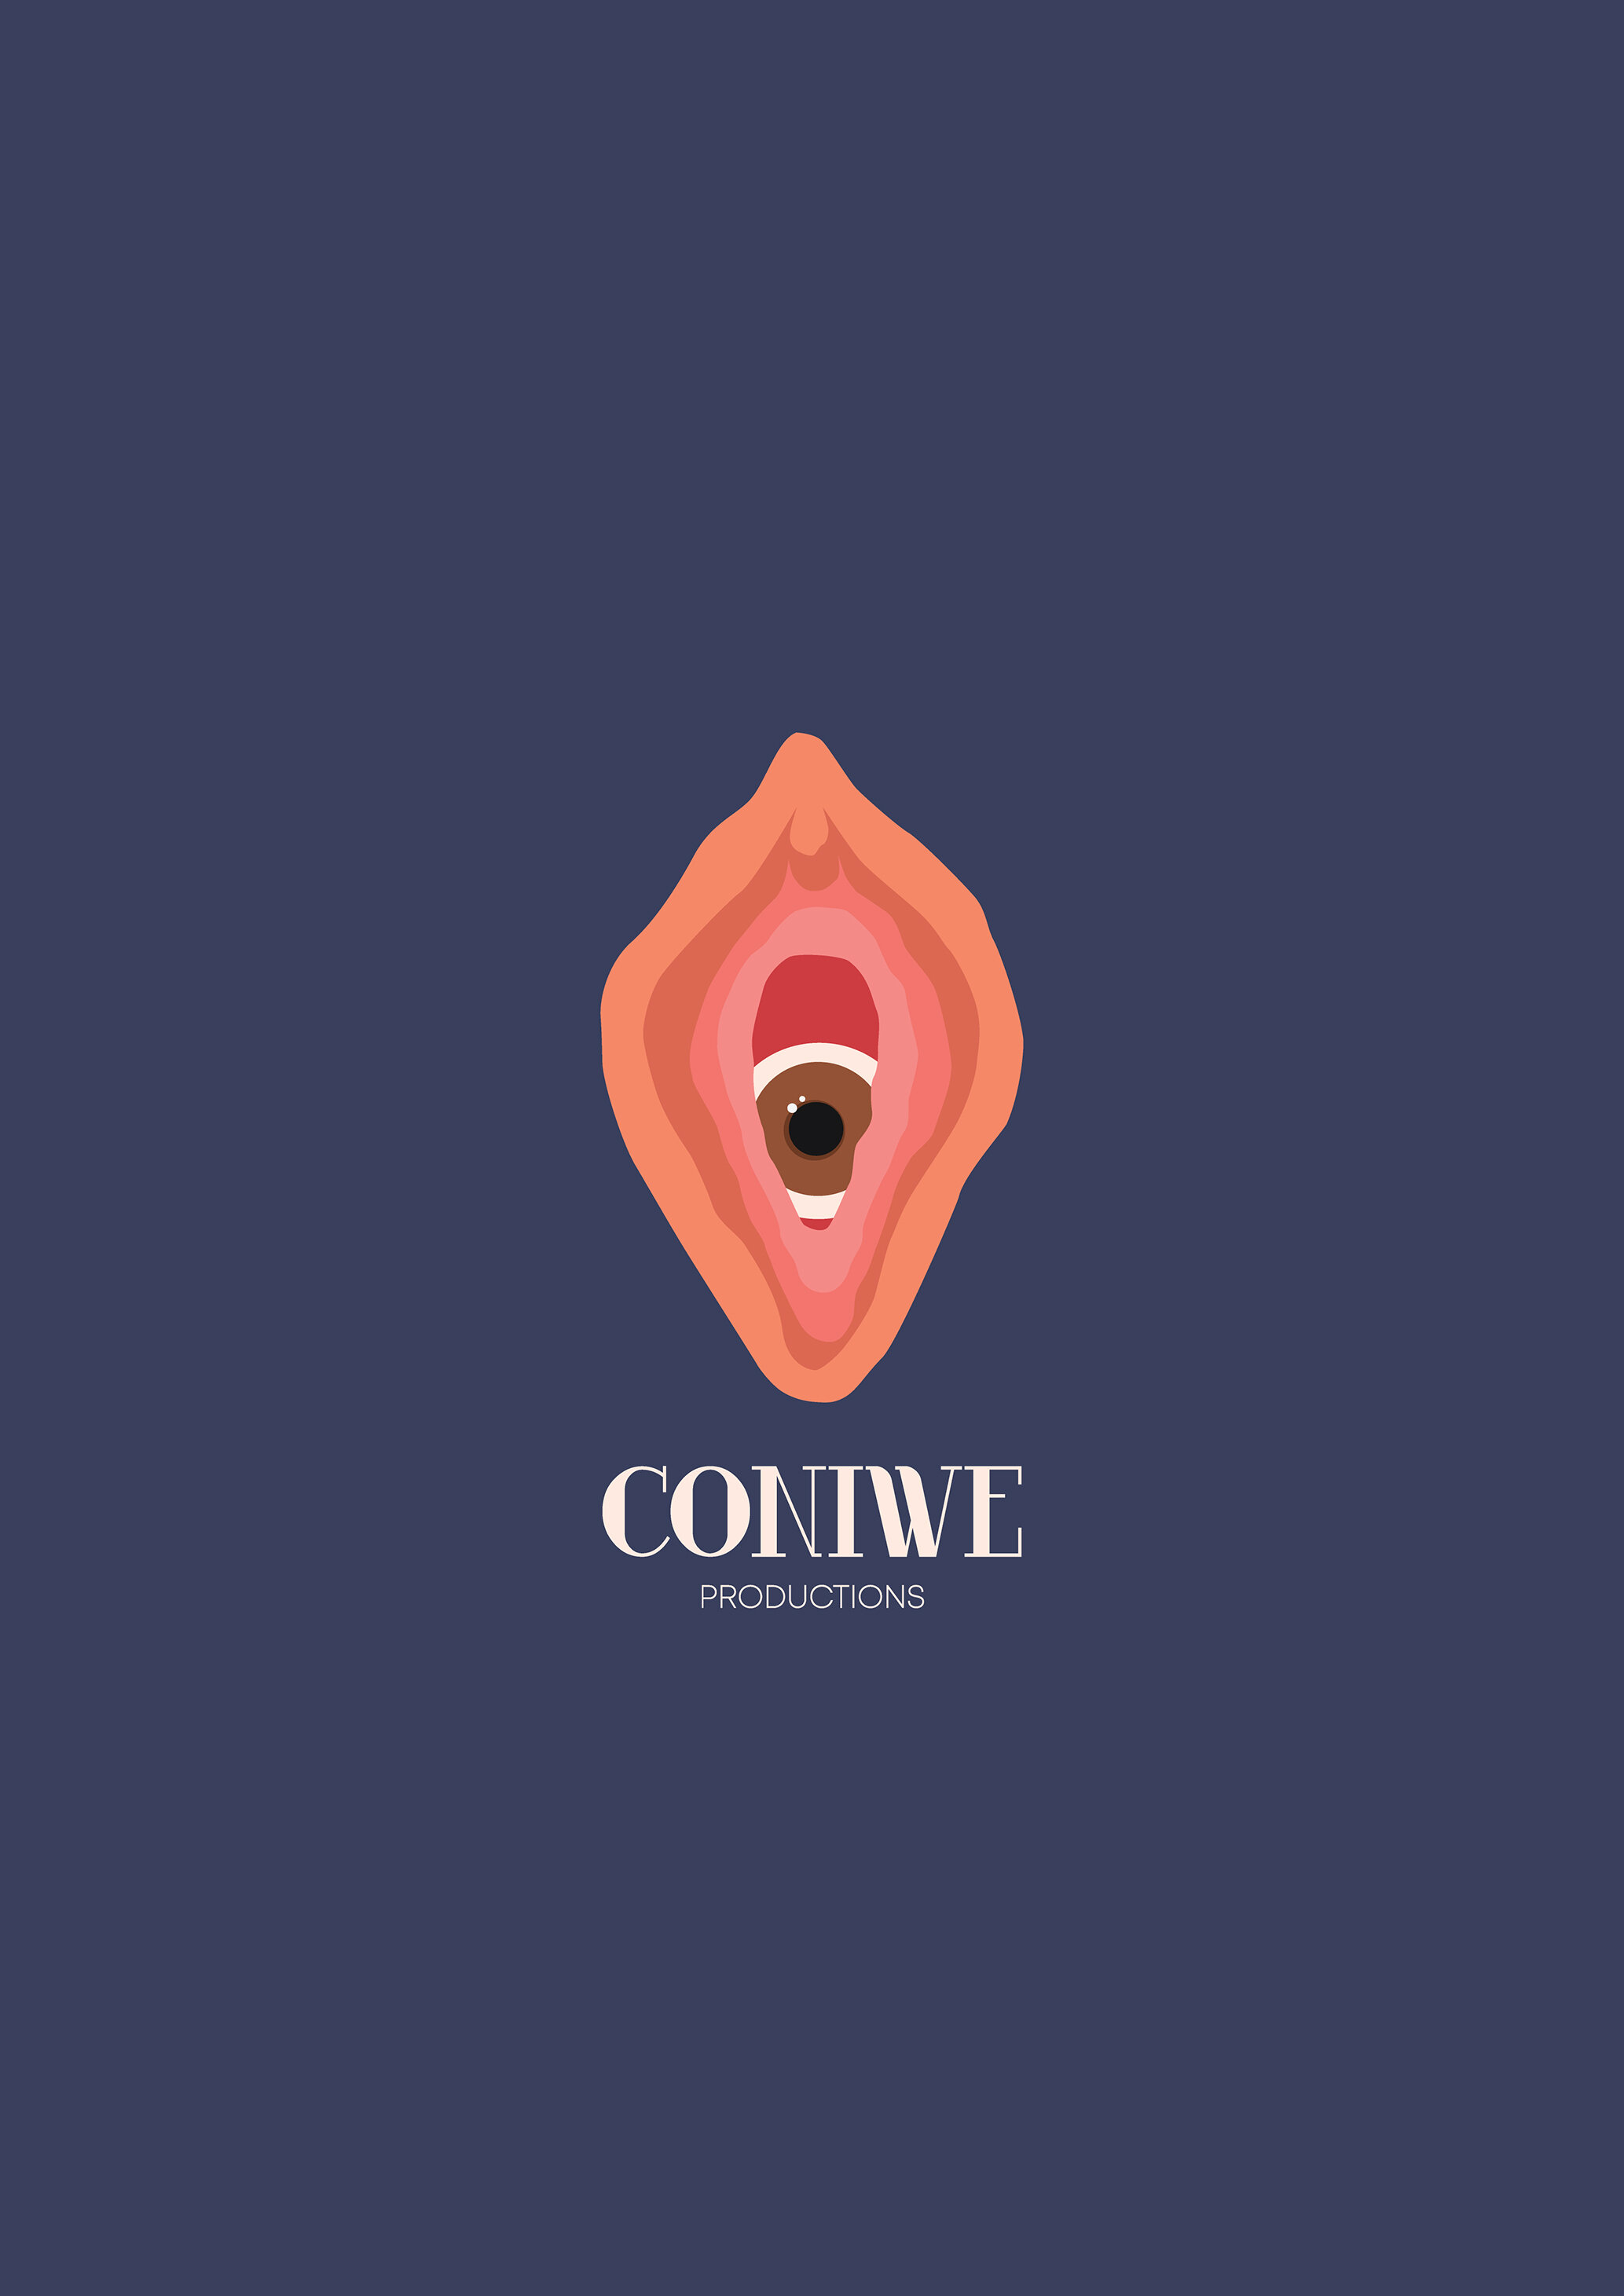 Logo and branding design for CONIWE Productions (Feminist film production company).